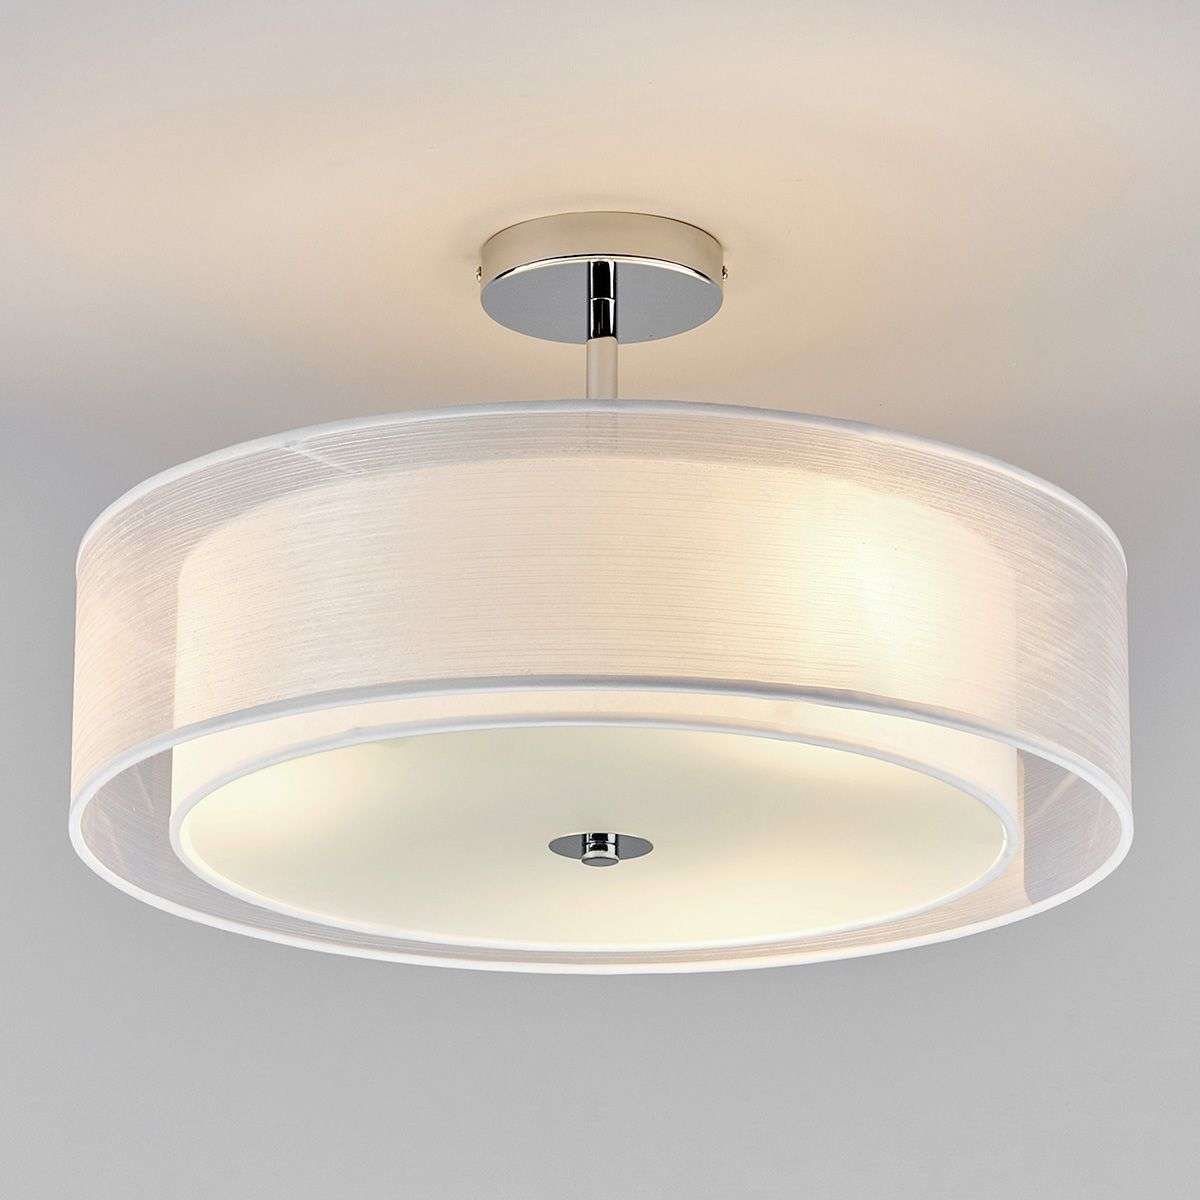 Pikka led ceiling light with a white lampshade lights pikka led ceiling light with a white lampshade mozeypictures Image collections